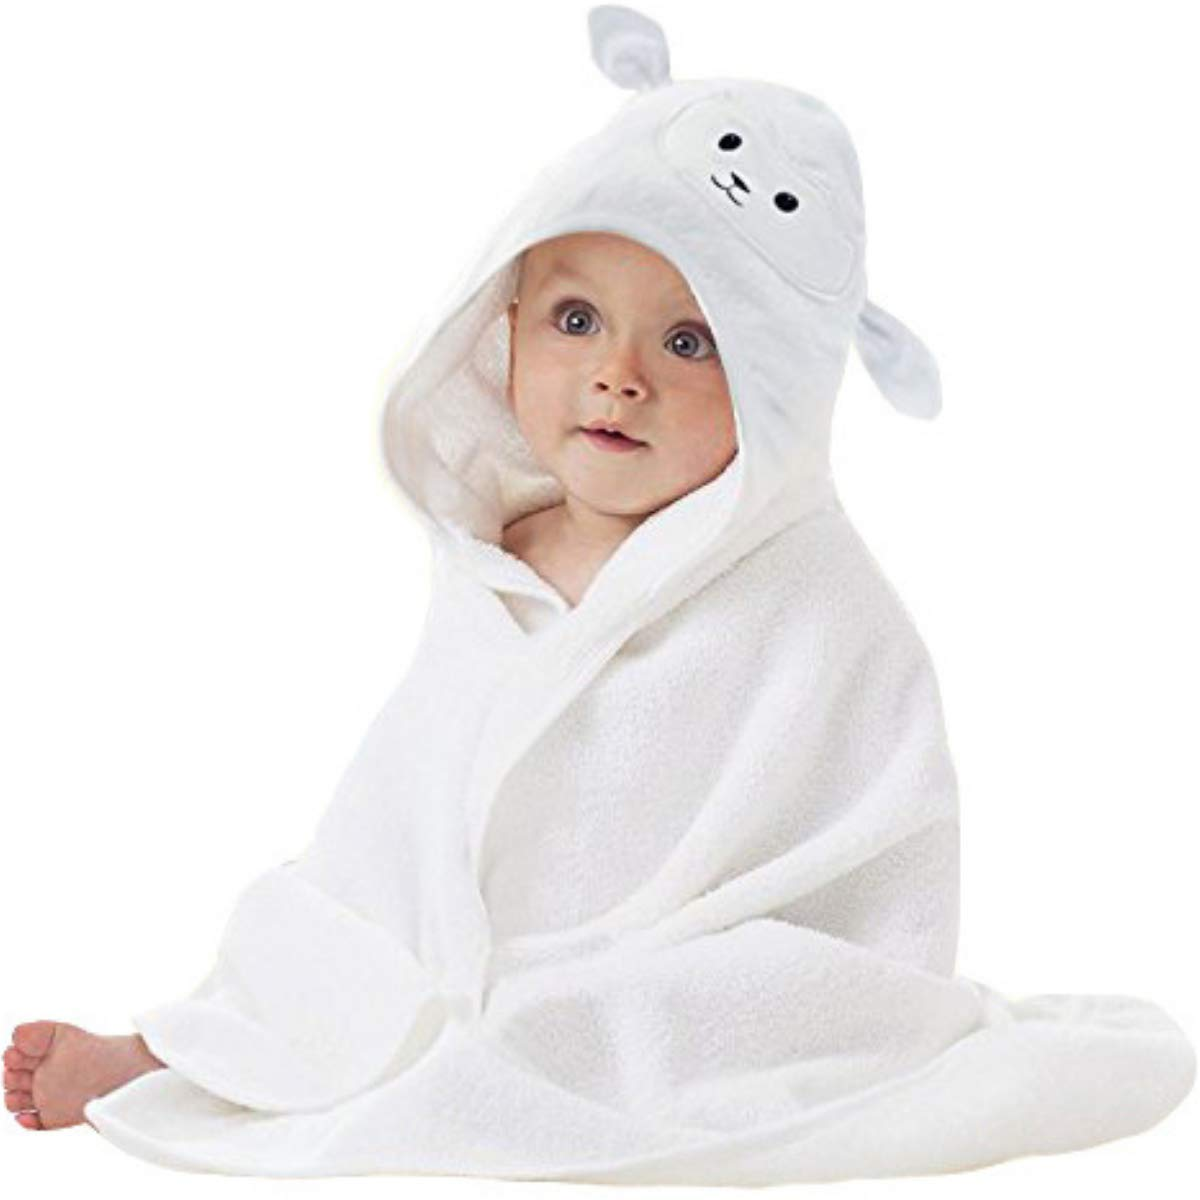 Organic Bamboo Baby Hooded Towel | Ultra Soft and Super Absorbent Toddler Hooded Bath Towel with Cute Lamb Face Design | Great Infant/Newborn Shower Present for Boy or Girl by Lucylla